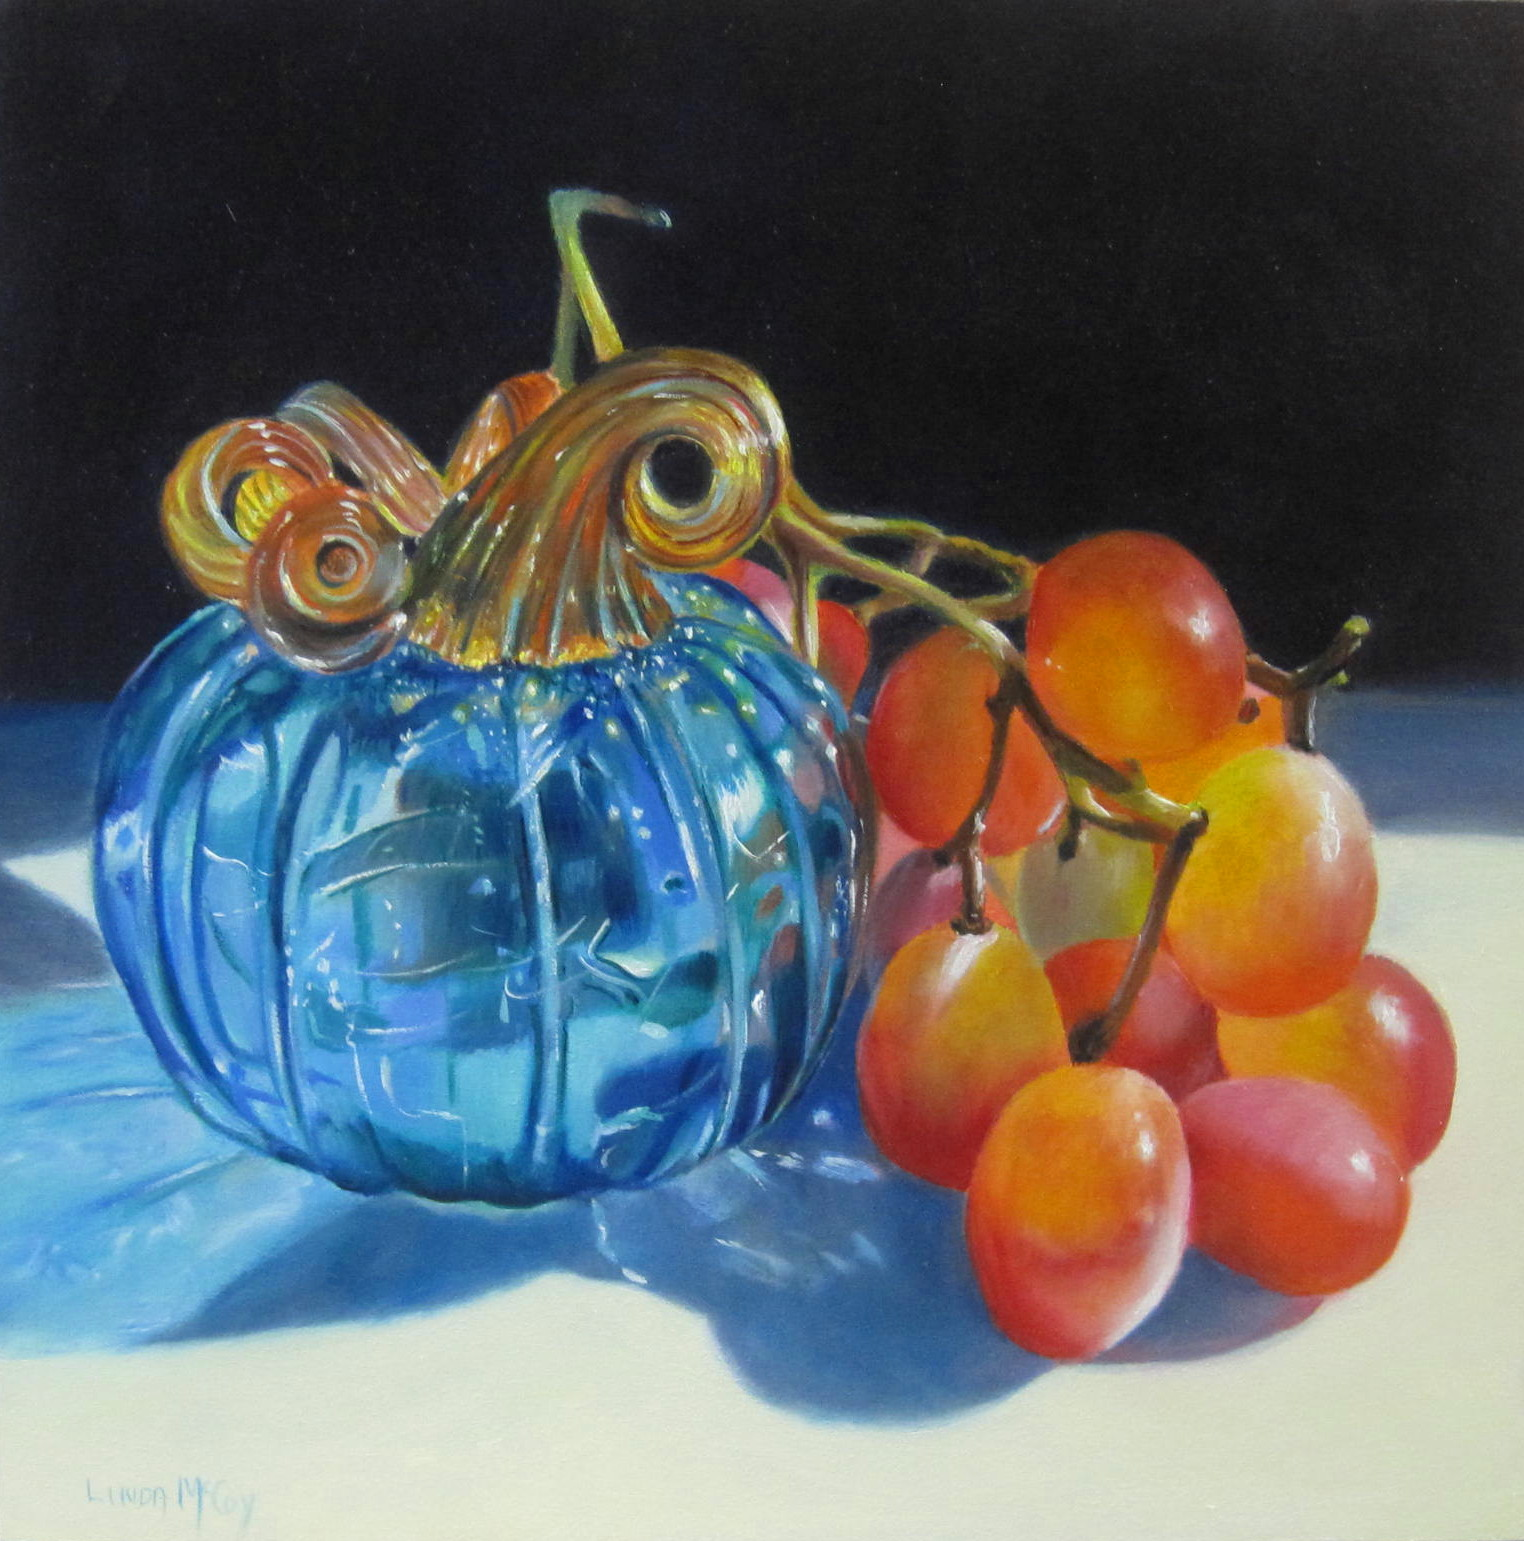 Linda mccoy glass act oil painting by linda mccoy for How to paint glass with oil paint